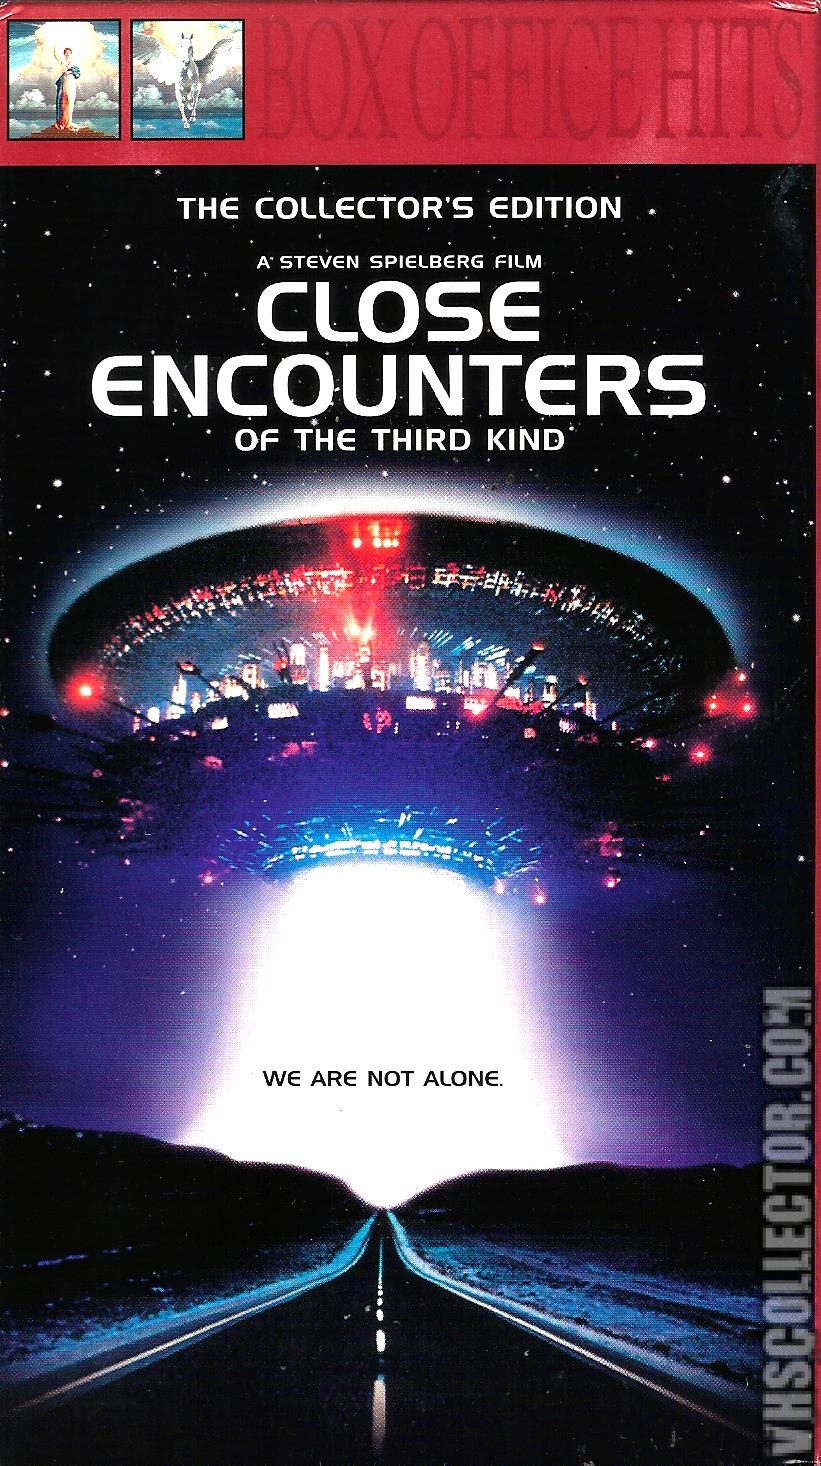 close encounters of the third kind (full version 1977 movie)